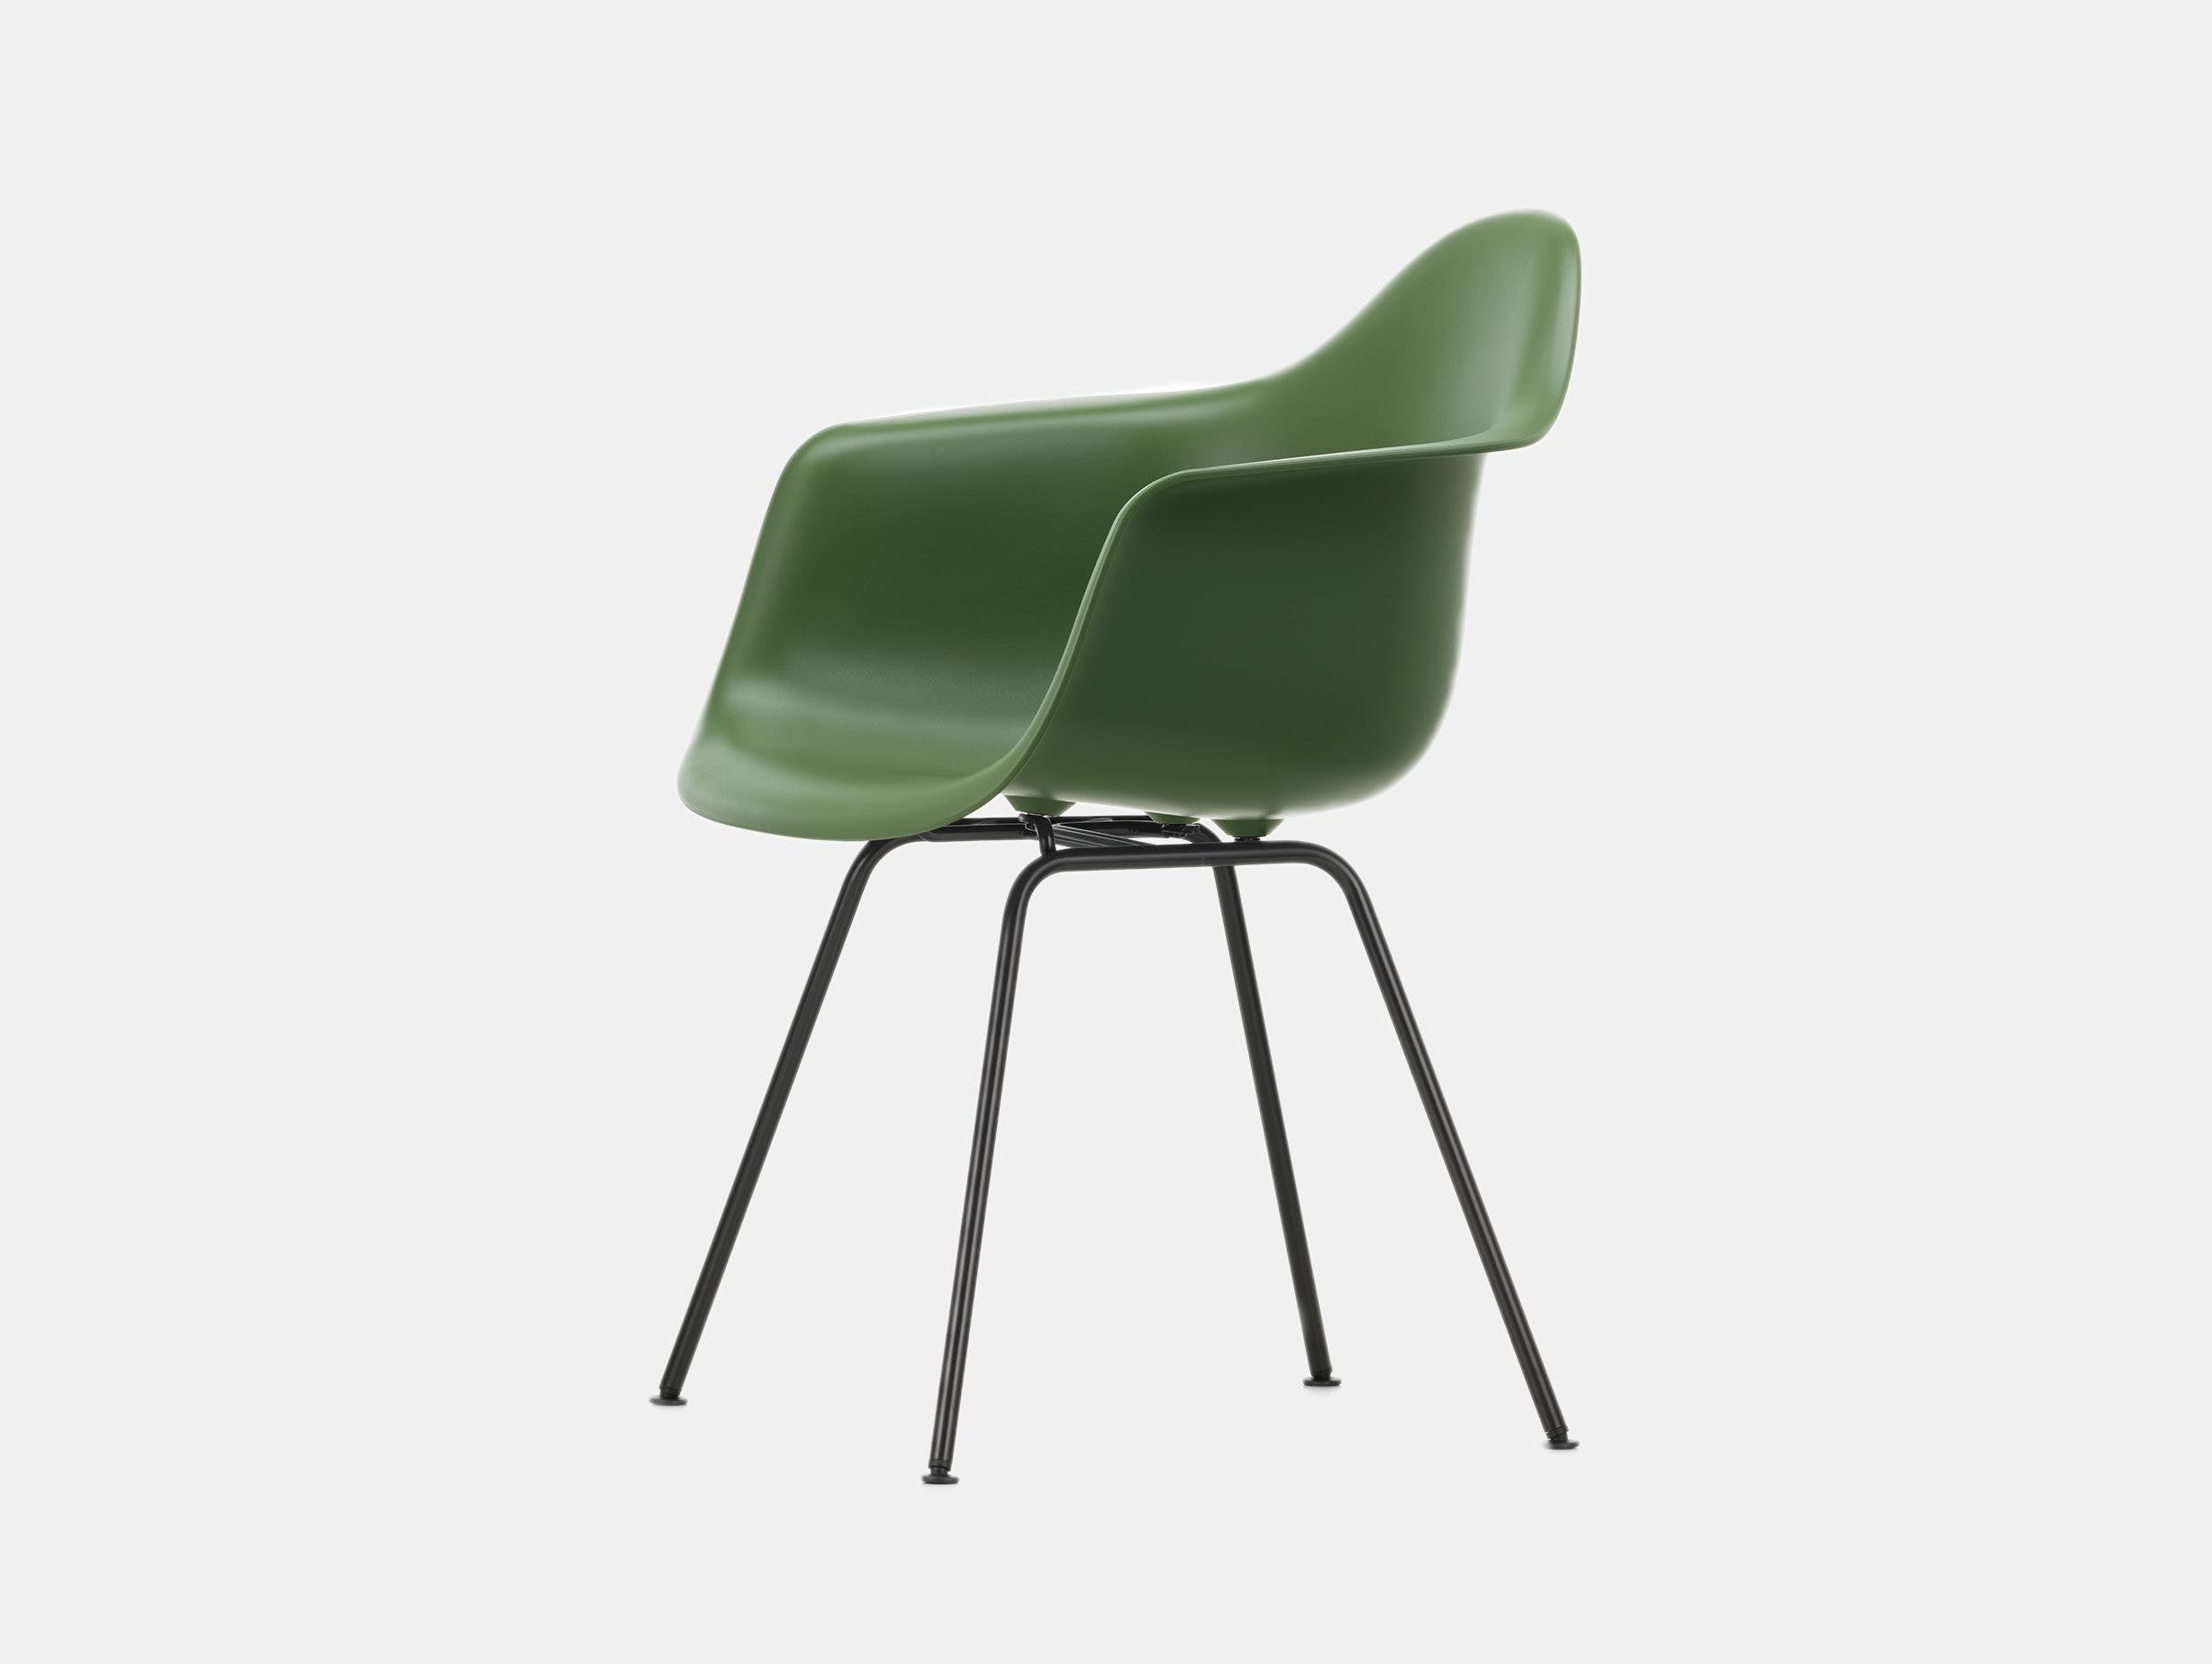 Vitra Eames Plastic Armchair DAX 48 Forest Blk